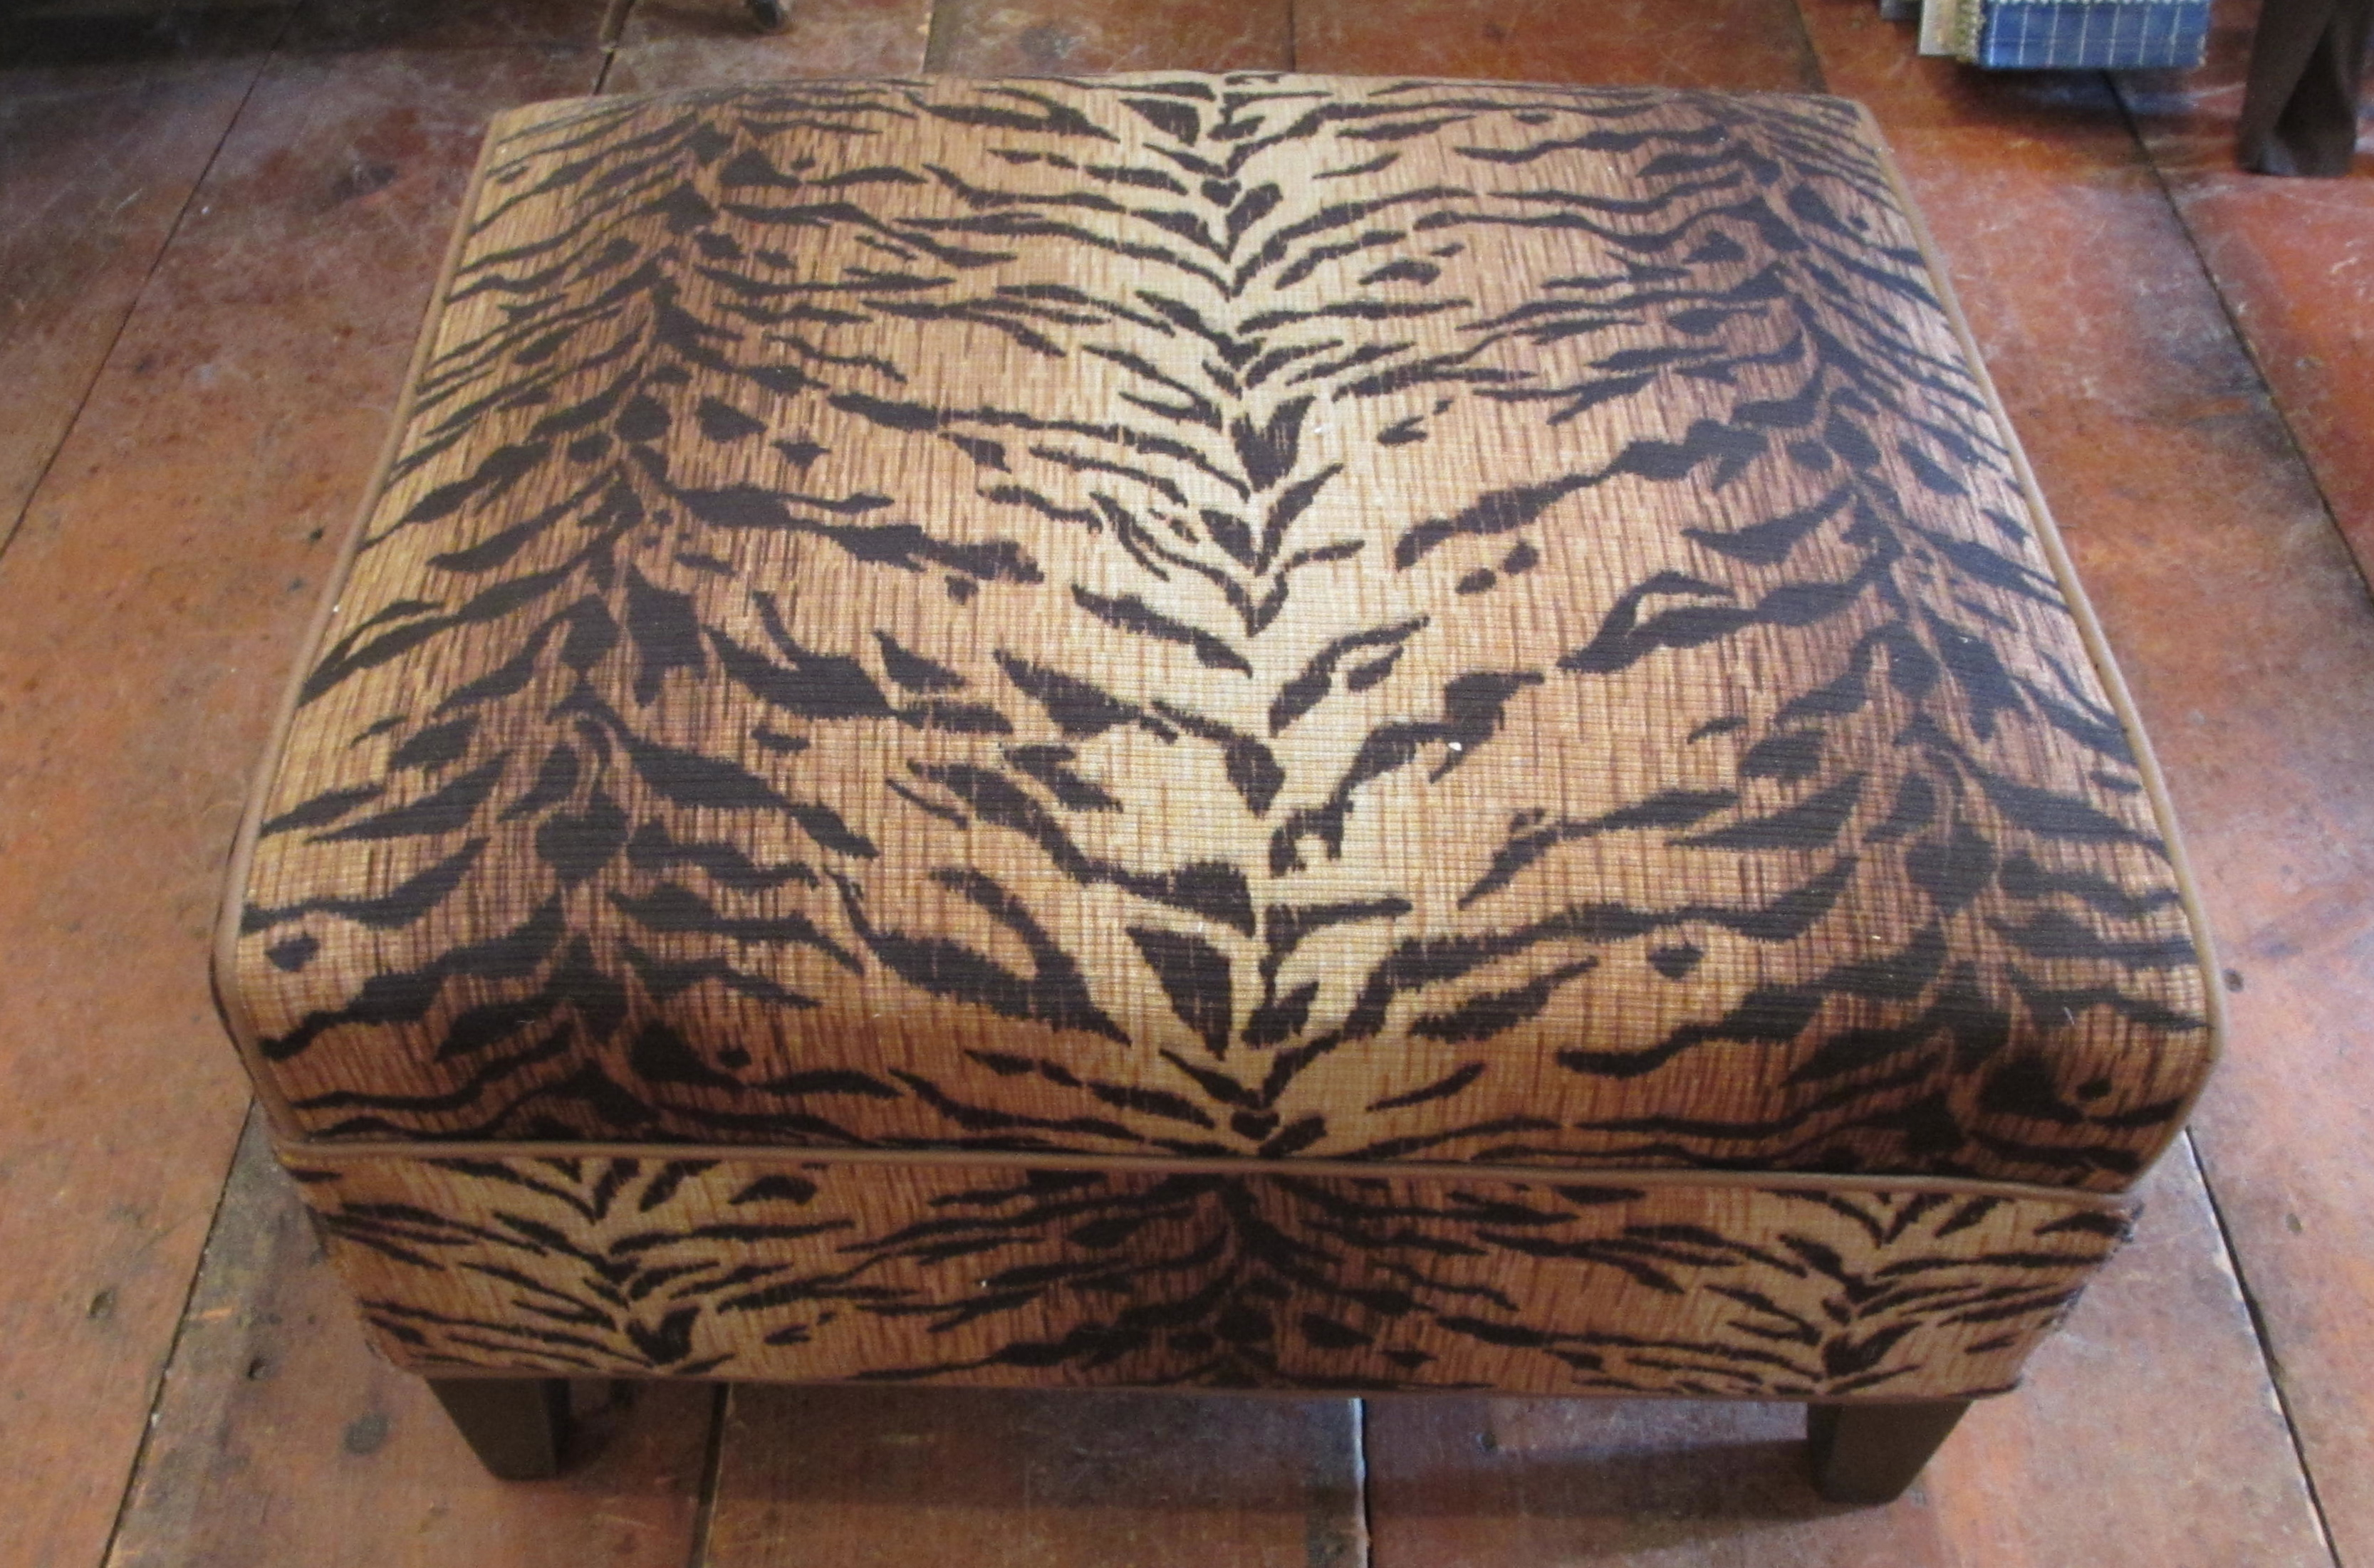 C 1930s Upholstered Stool